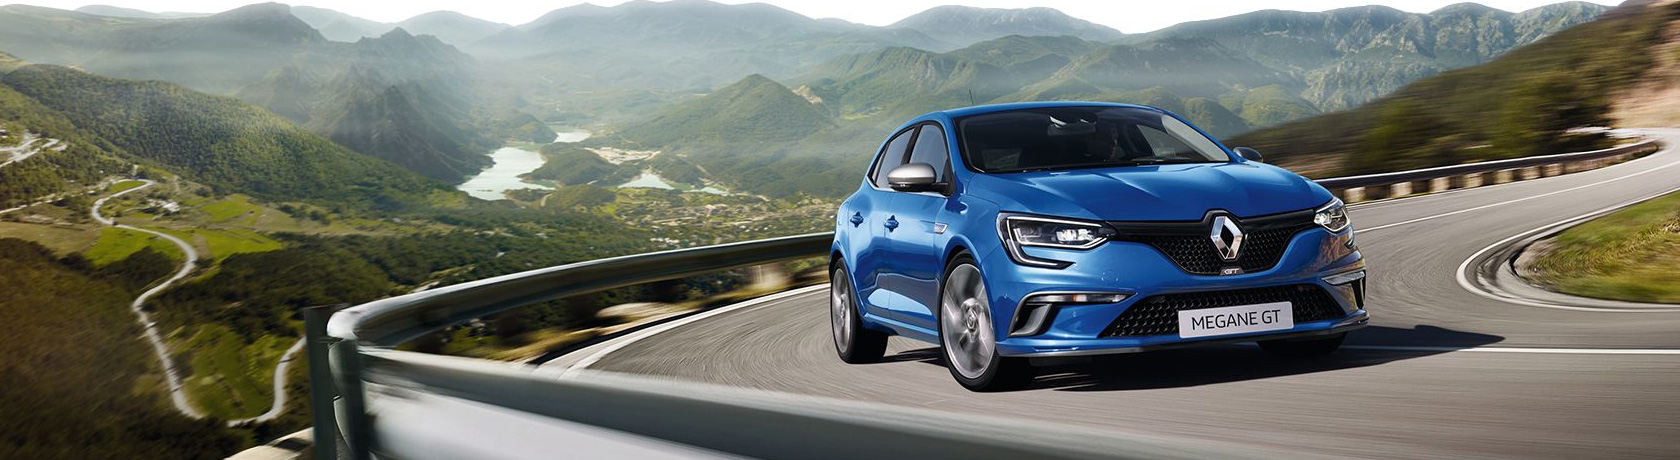 Take to the mountain roads in a new Renault Megane GT hatch from Metro Renault in Brisbane.